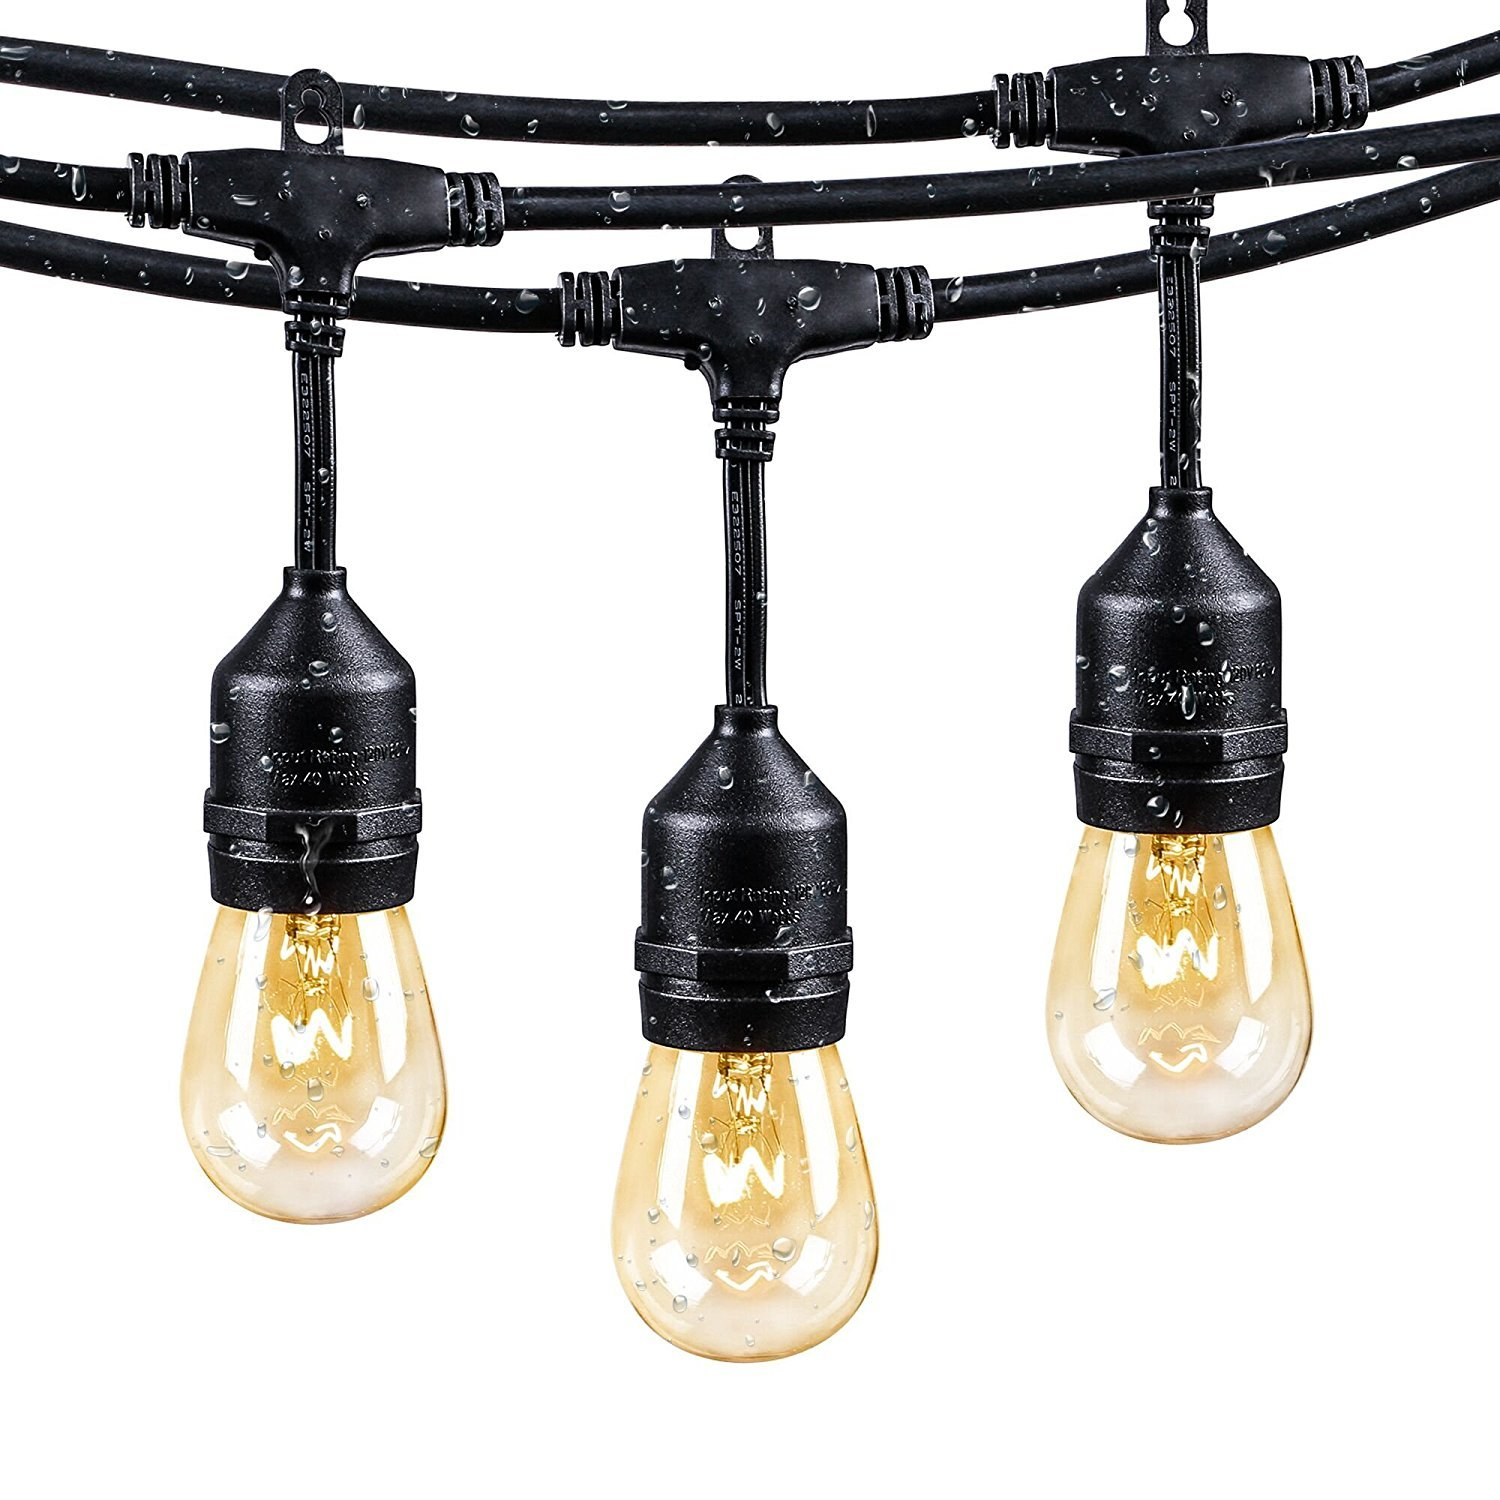 Brightown 48Ft Weatherproof Outdoor Patio String Lights with E26 Base Sockets & S14 Bulbs, Hanging Market Cafe Edison Vintage Strand for Deckyard Backyard Bistro Pergola Wedding Gathering Party, Black